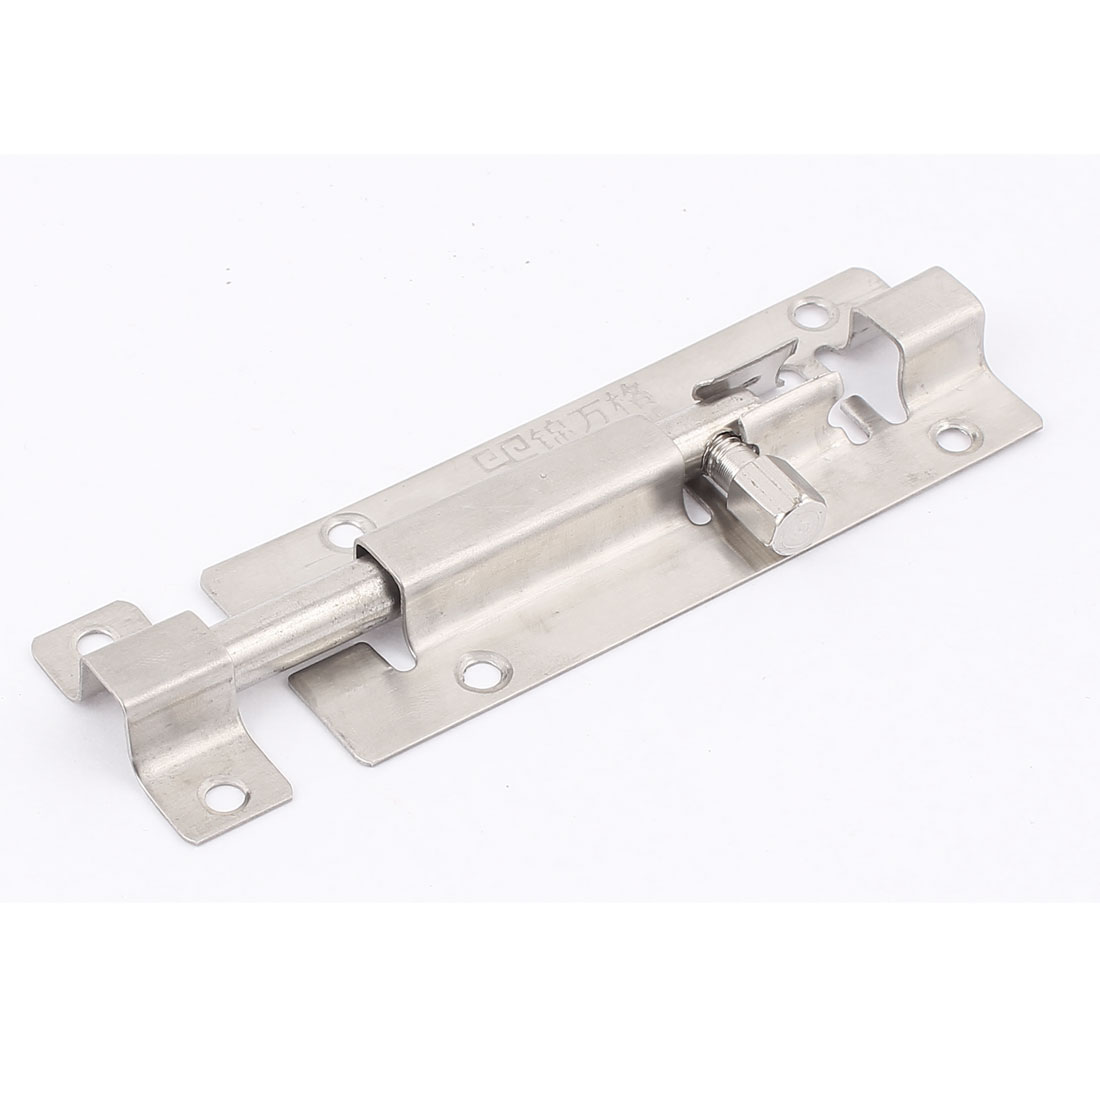 "100mm 4"" Long Stainless Steel Door Security Latch Sliding Lock Barrel Bolt"